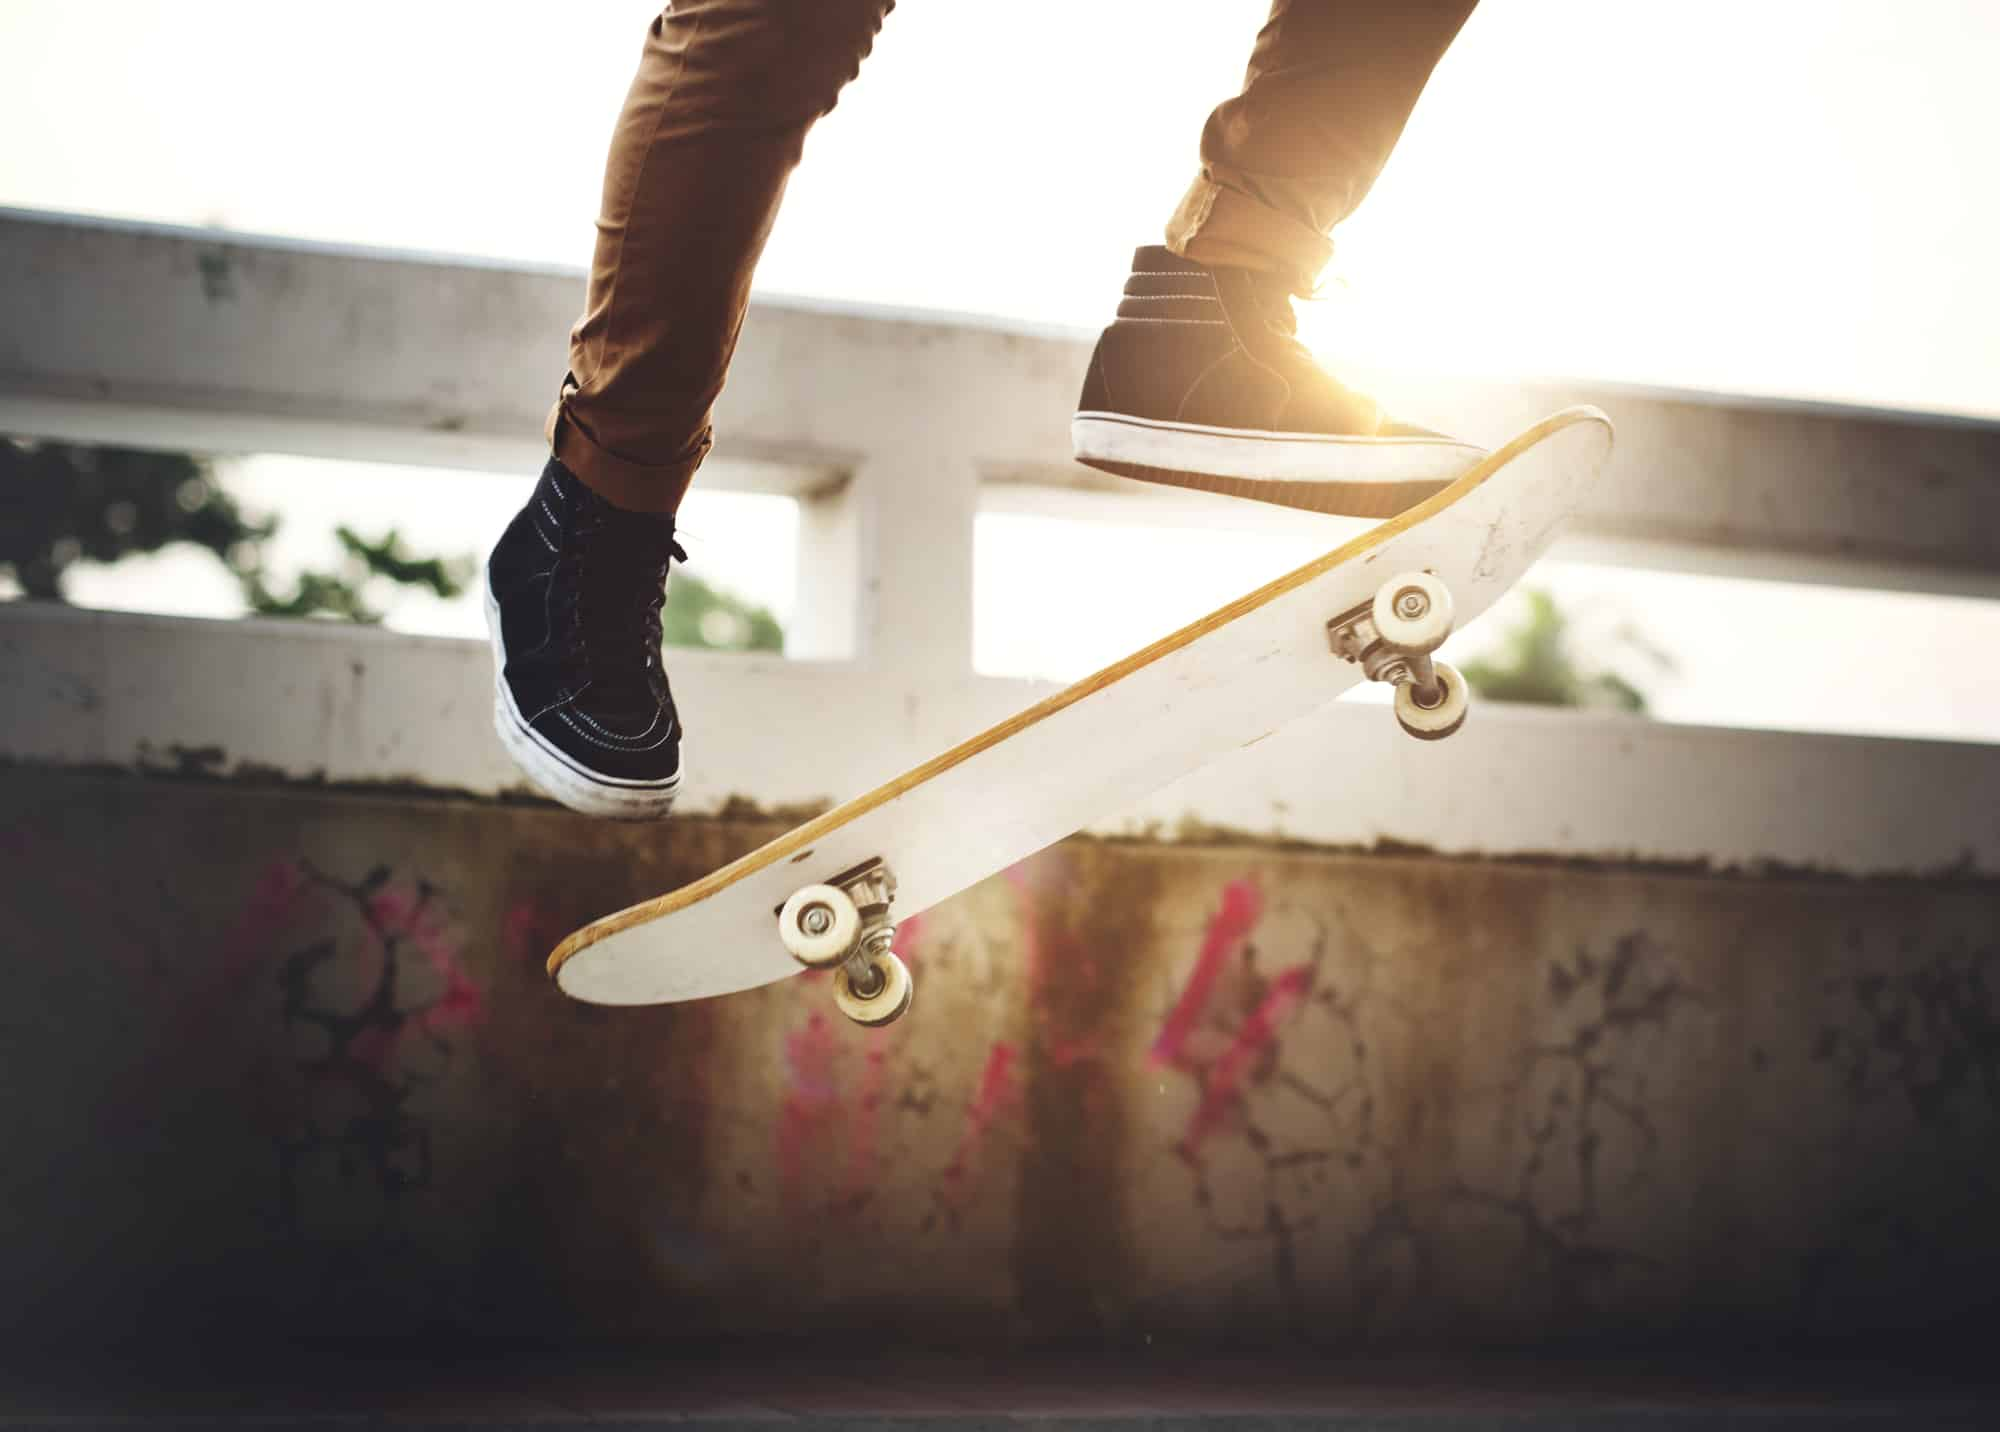 how long does it take to get good at skateboarding